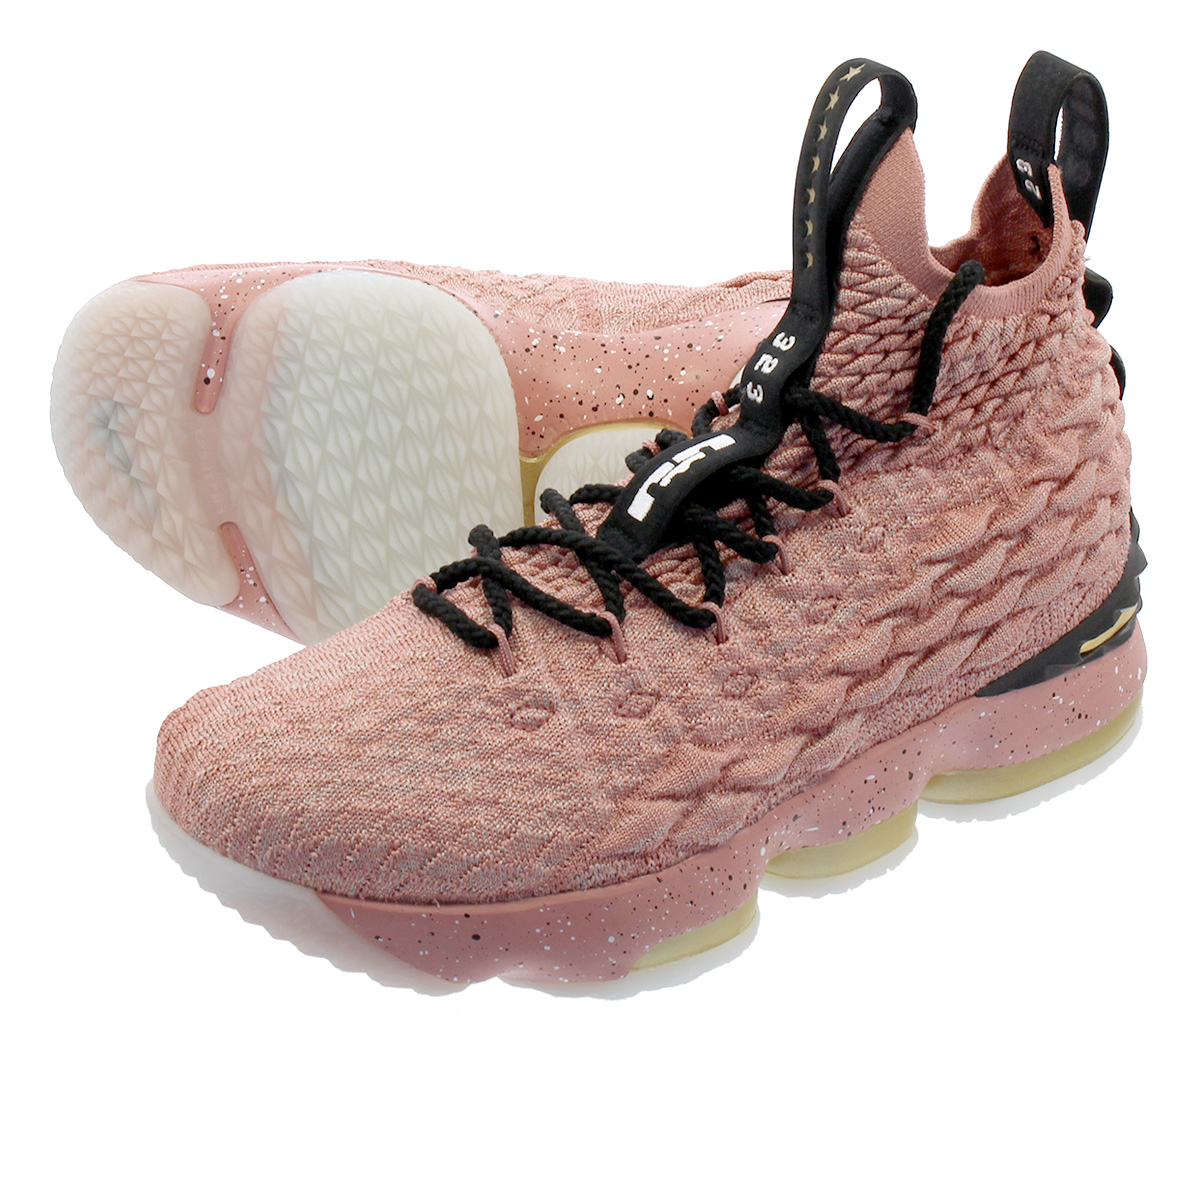 【大人気の女の子サイズ♪】 NIKE LEBRON 15 GS 【HOlLLYWOOD】 ナイキ レブロン 15 GS RUST PINK/METALLIC GOLD/BLACK 943762-600